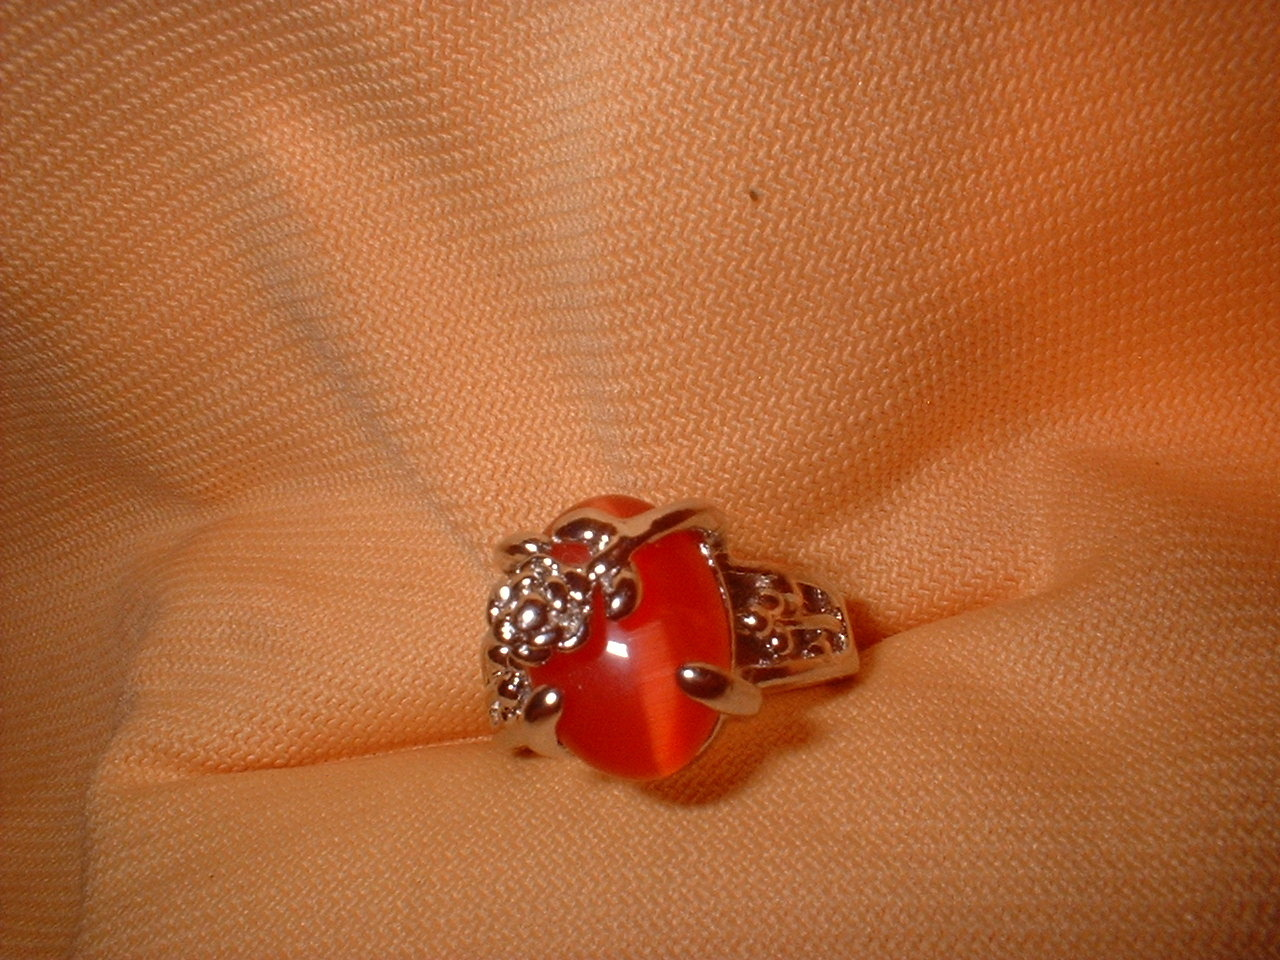 Flower ring orange small stone 6.5 or 8. side